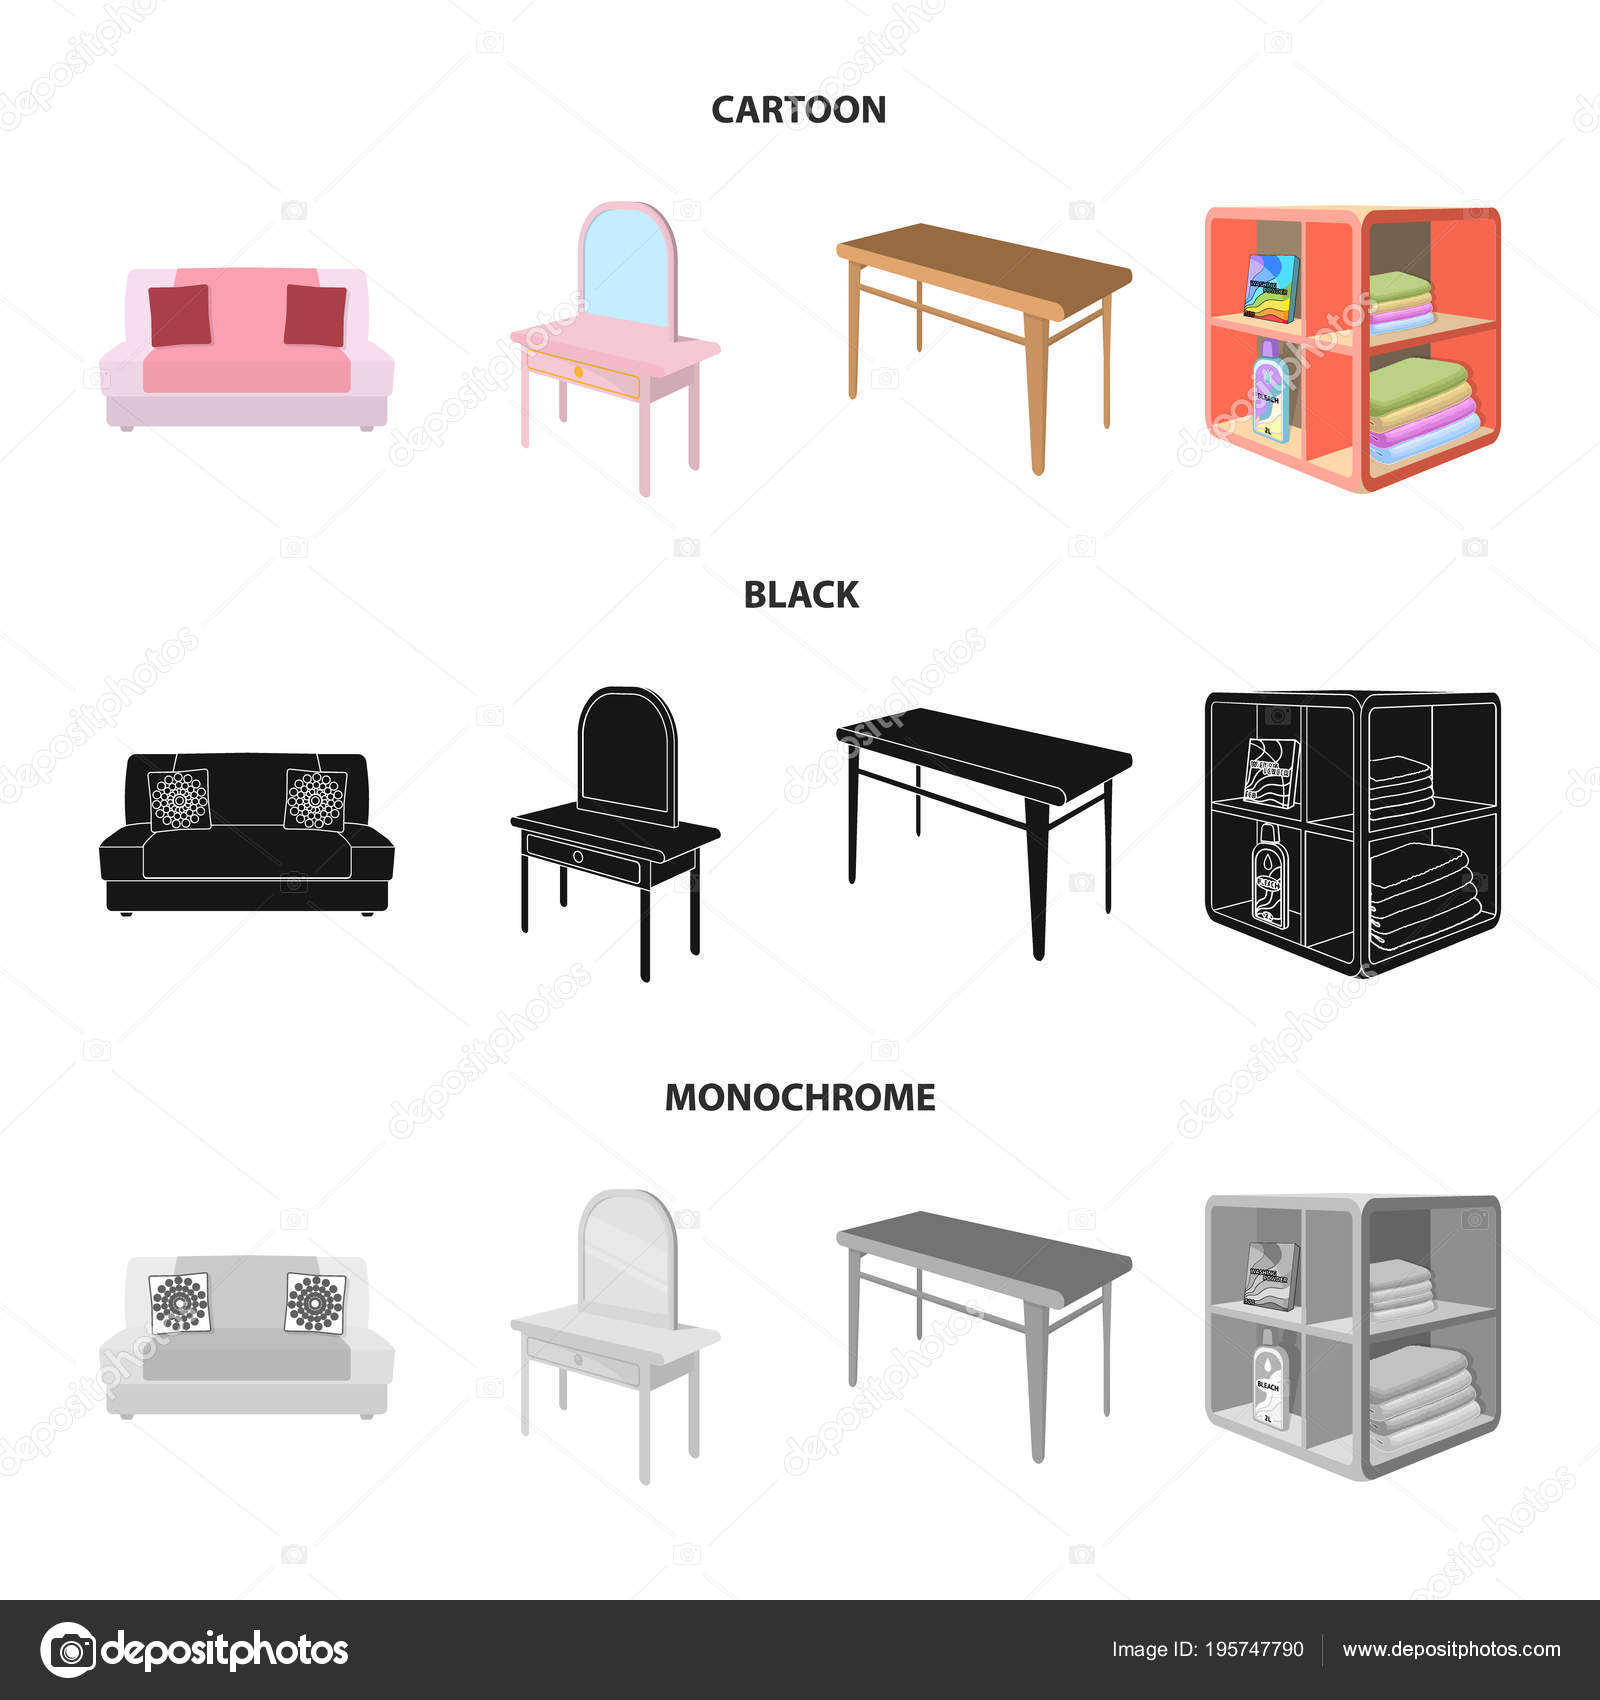 Super Soft Sofa Toilet Make Up Table Dining Table Shelving For Cjindustries Chair Design For Home Cjindustriesco